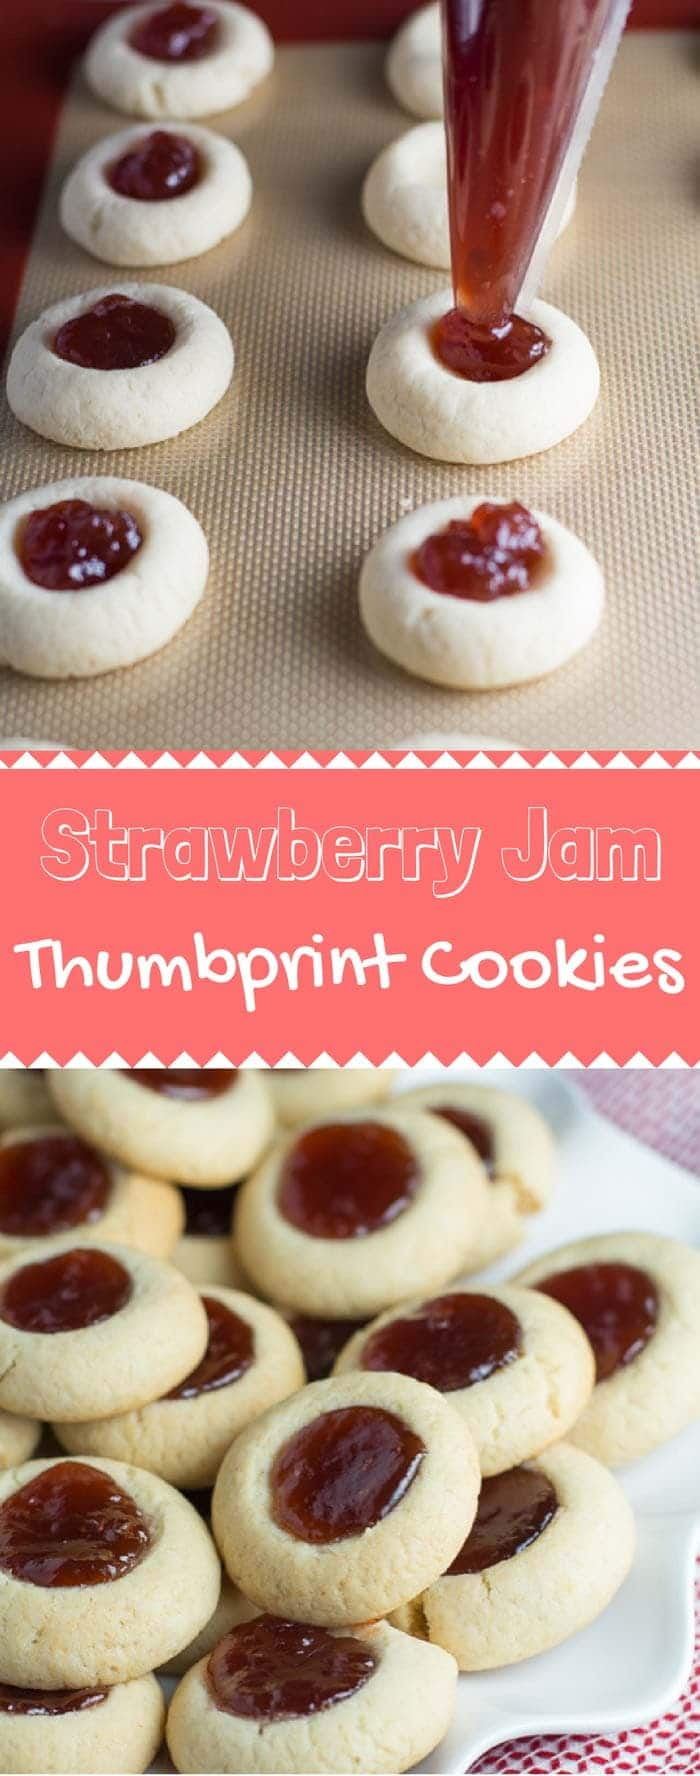 These Strawberry Jam Thumbprint Cookies are so fun to make! It's a super simple recipe, and you can fill it with whatever you like. I'd recommend keeping this one in your back pocket! #thumbprintcookies #fruitycookies #dessert #sweets | bakedujour.com